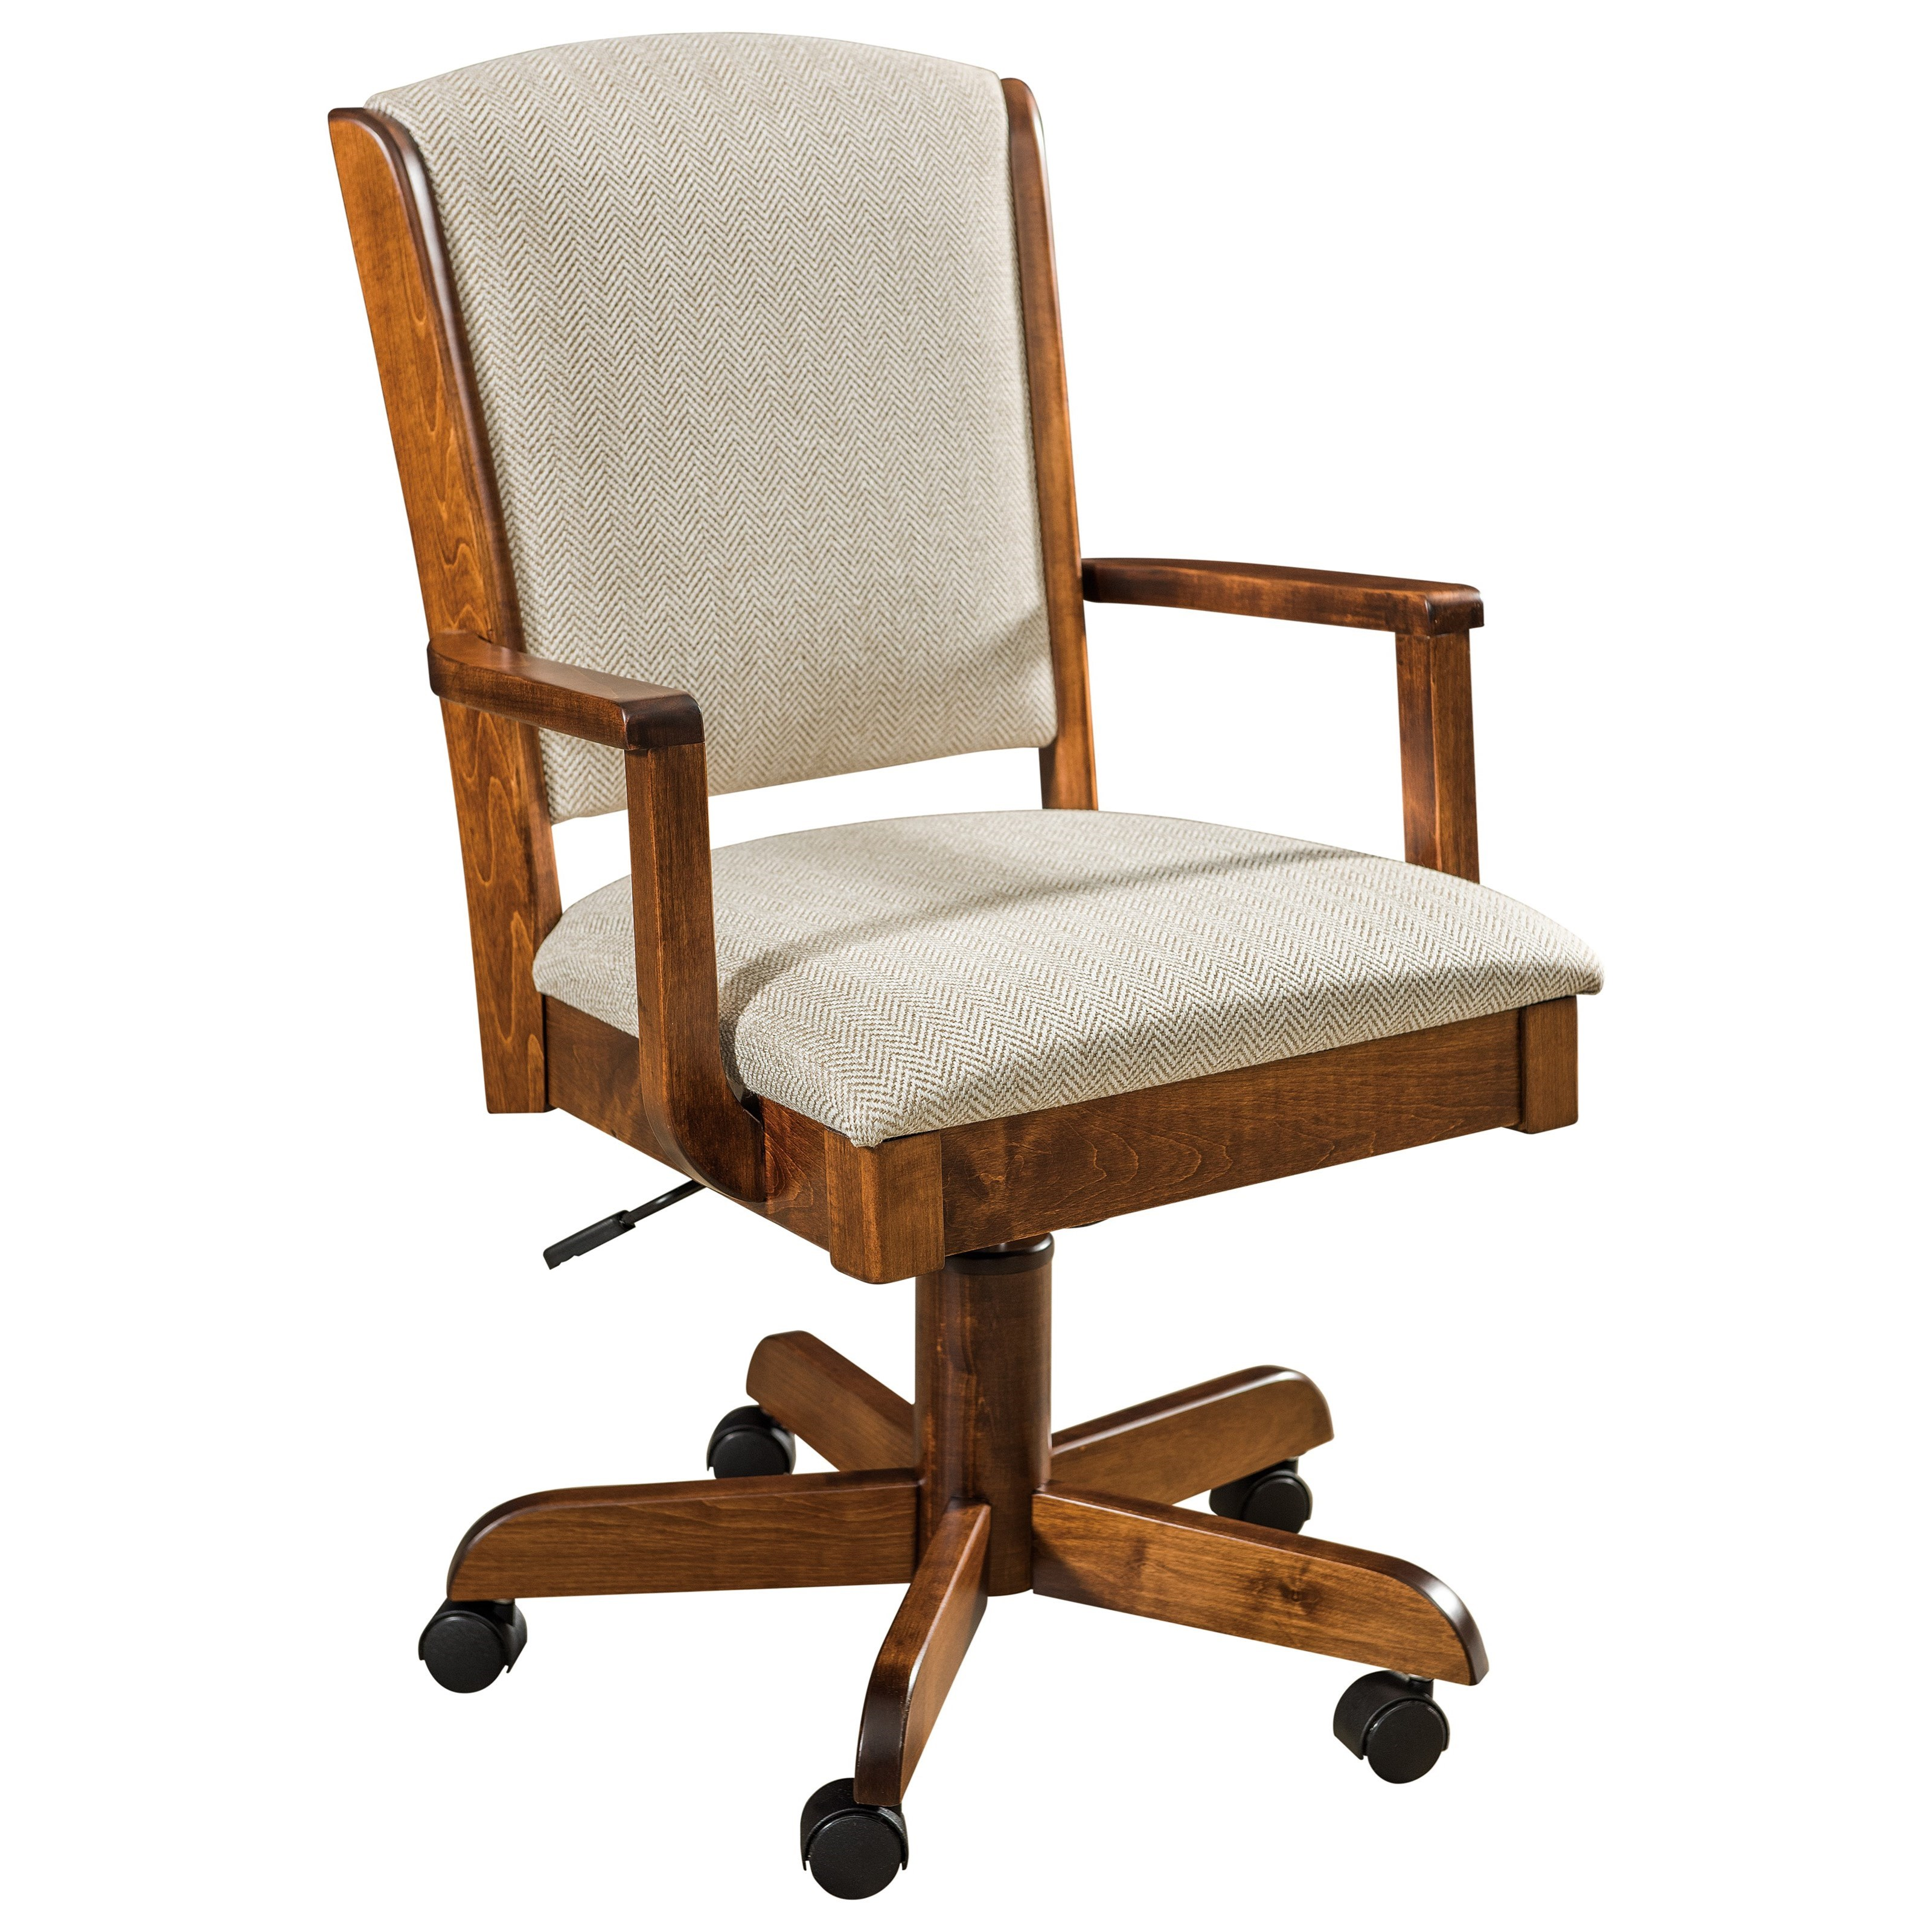 Morris Customizable Solid Wood Desk Chair by F&N Woodworking at Saugerties Furniture Mart